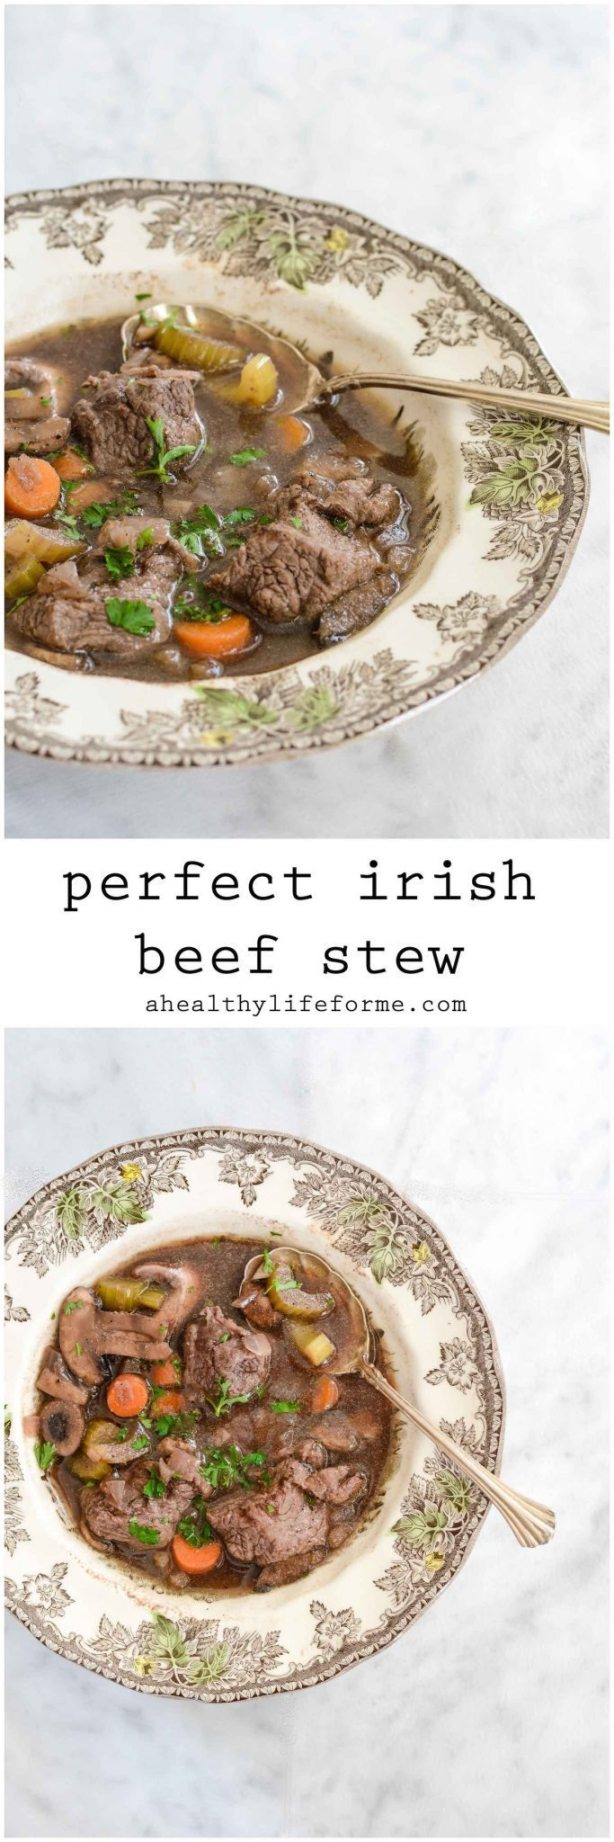 Irish Beef Stew Healthy and Clean Recipe | ahealthylifeforme.com